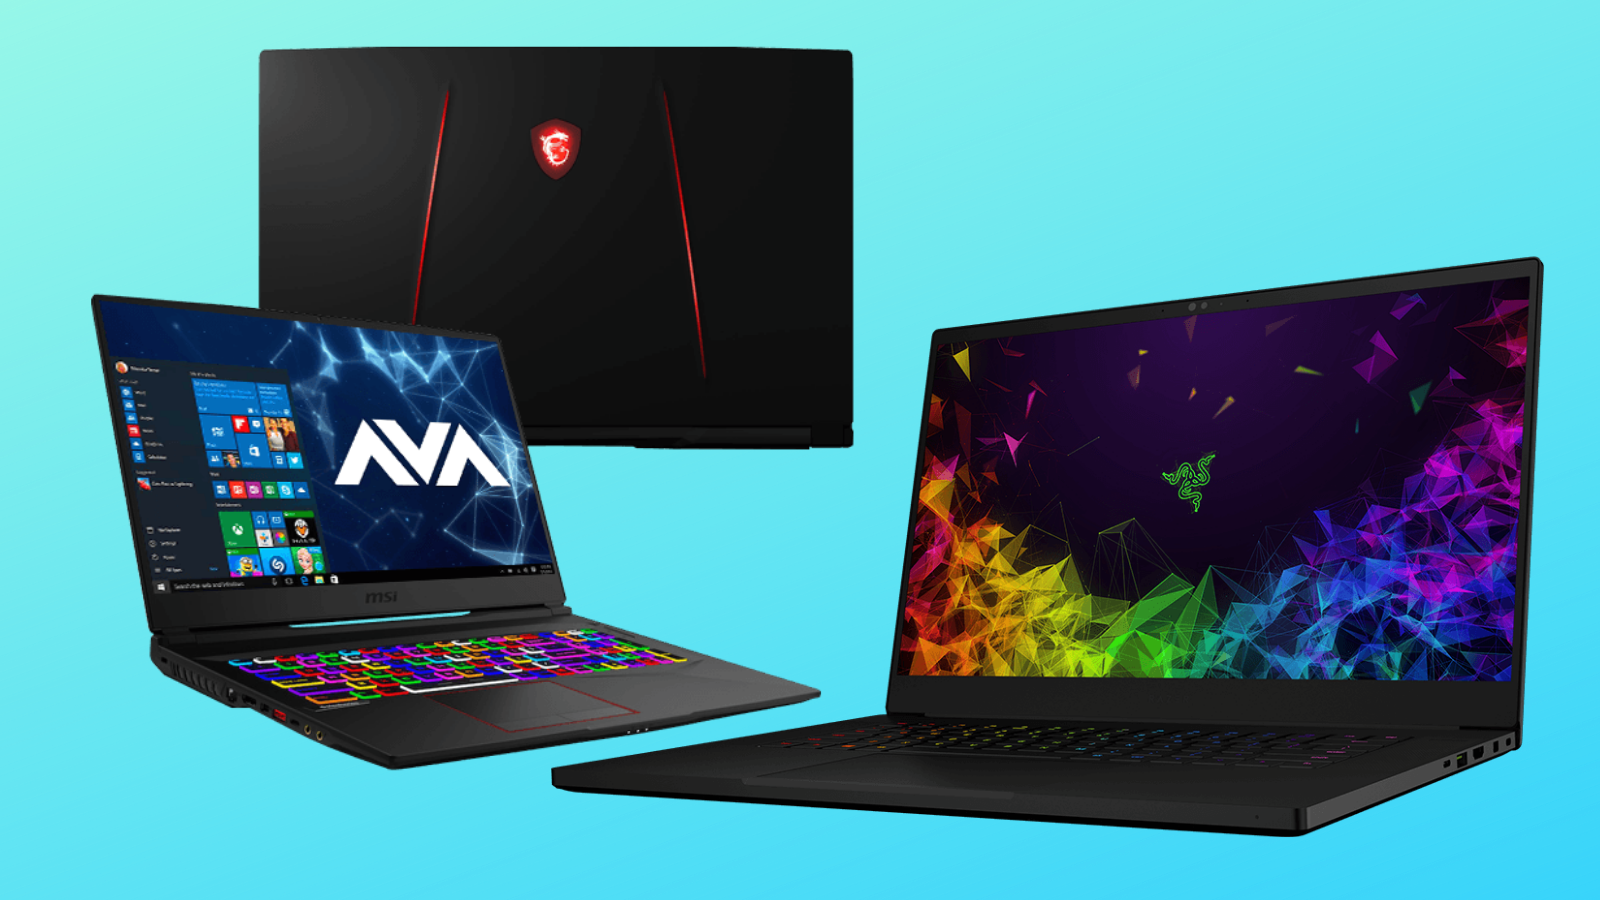 9 Best RTX 2070 Gaming Laptops to Buy in 2019 For High-End